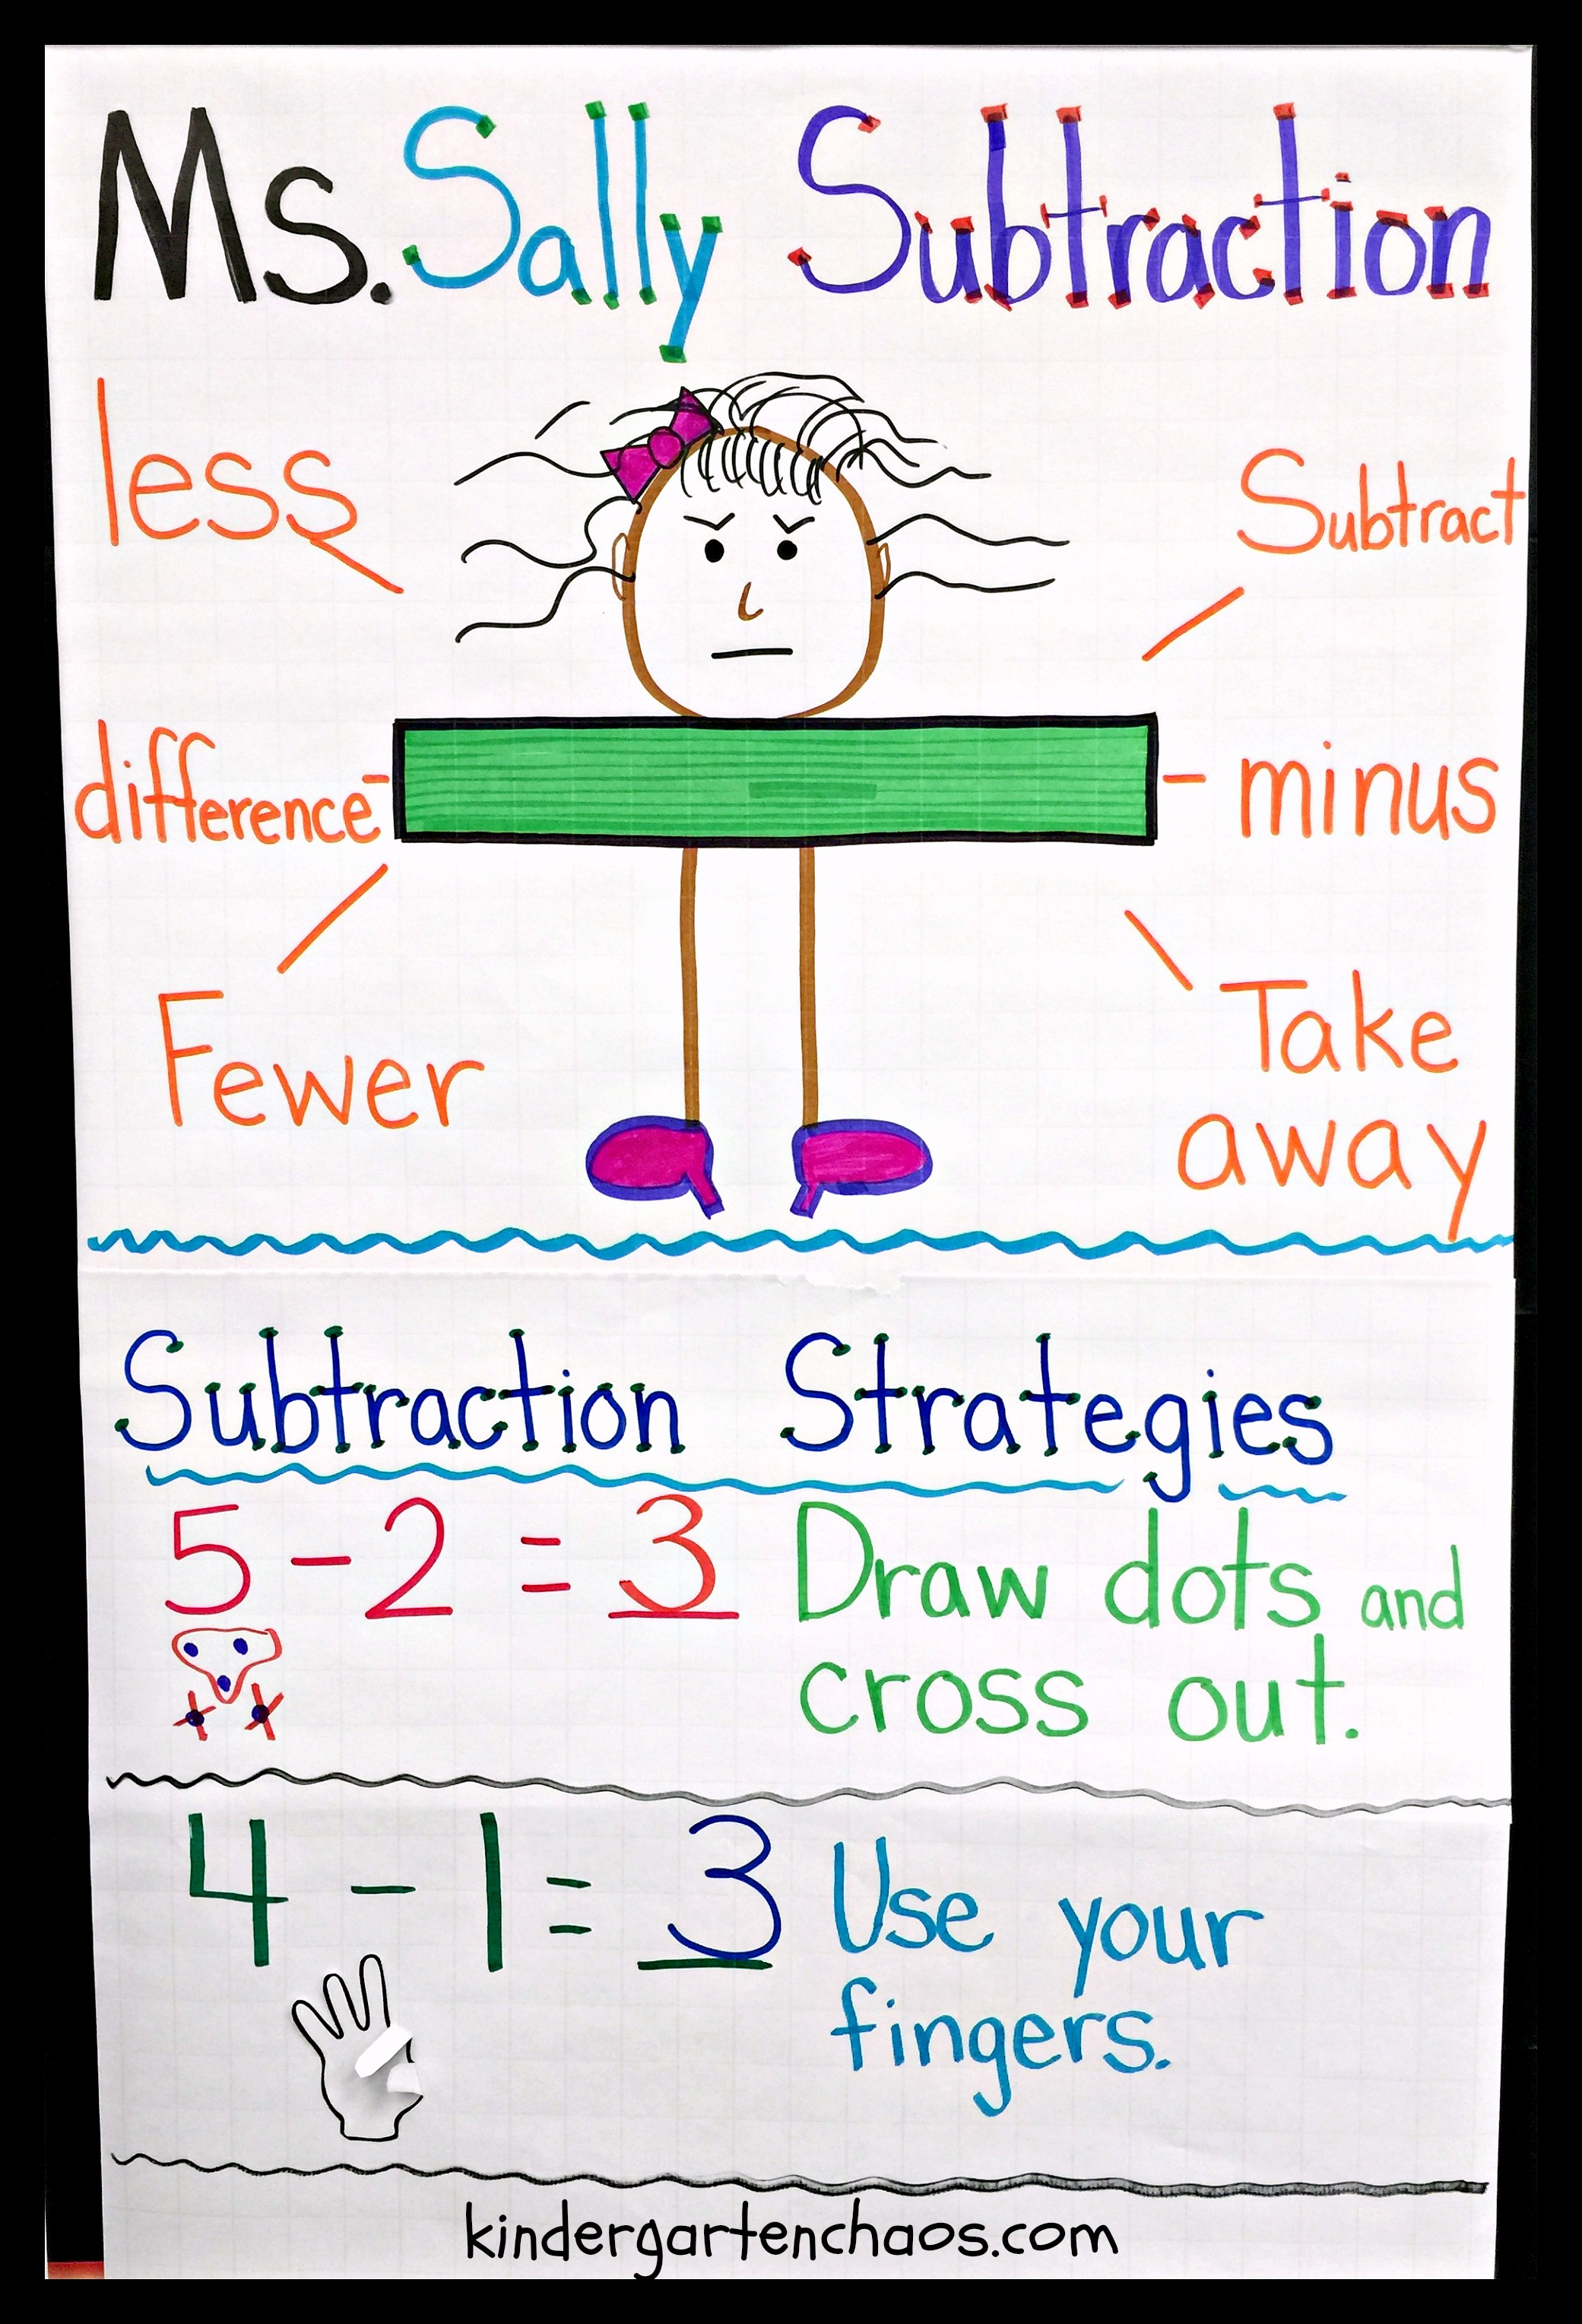 Worksheet Different Words For Subtraction 15 fun and free ideas for teaching subtraction anchor chart kindergartenchaos com